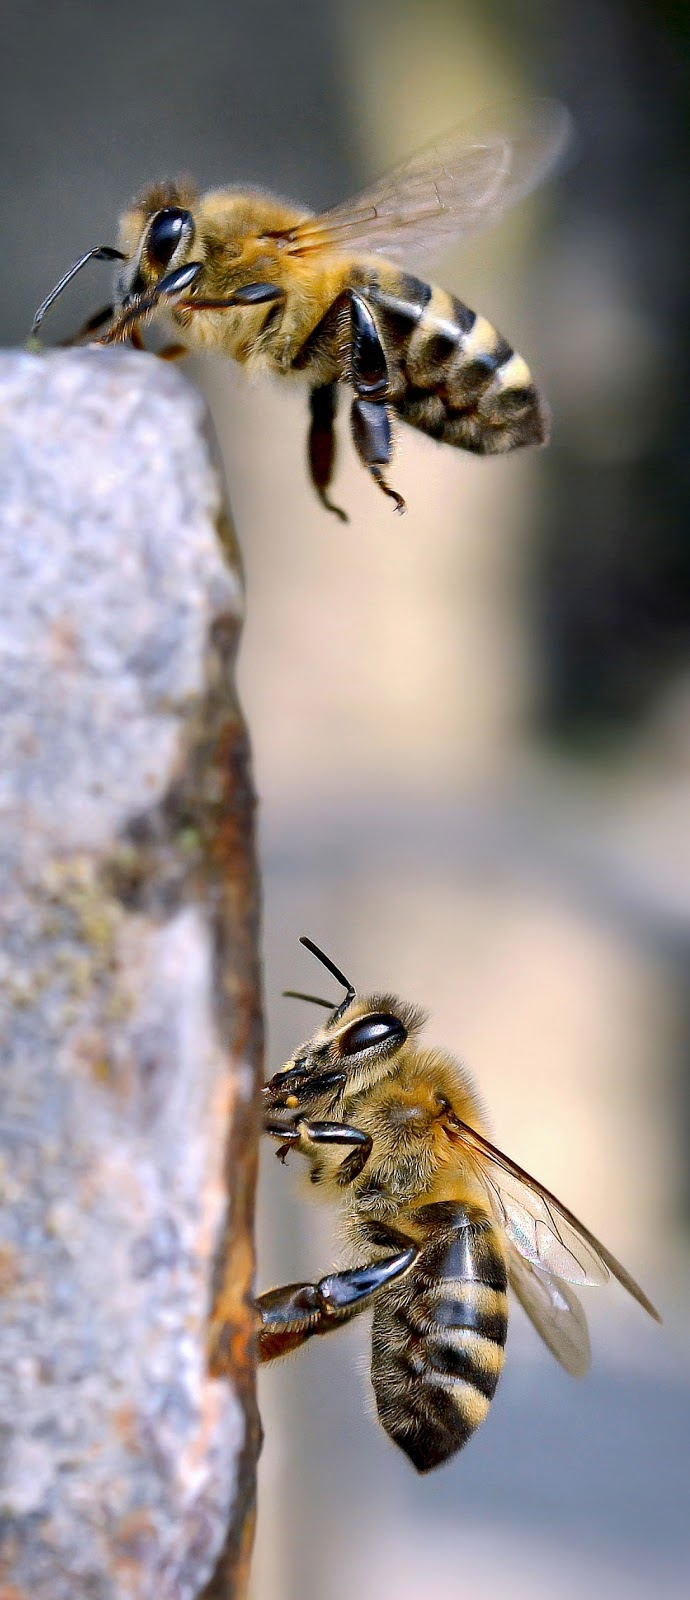 Macro photo of two bees.